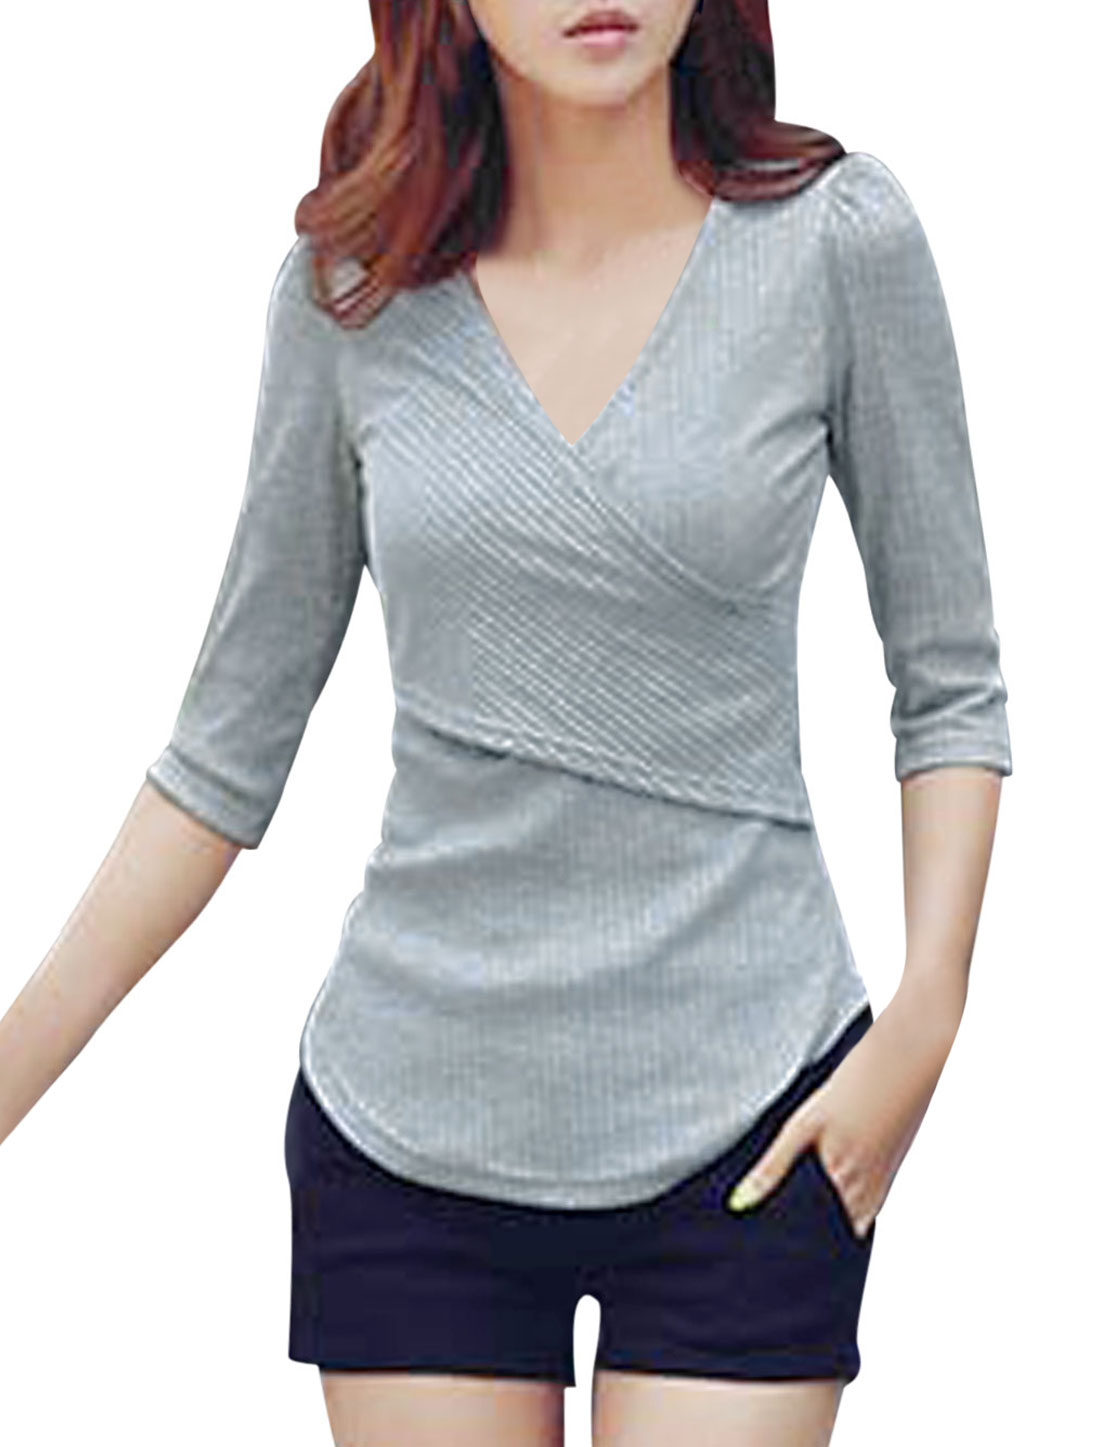 Women Sexy Crossover V-neck Pullover Slim Fit Shirt Light Gray M